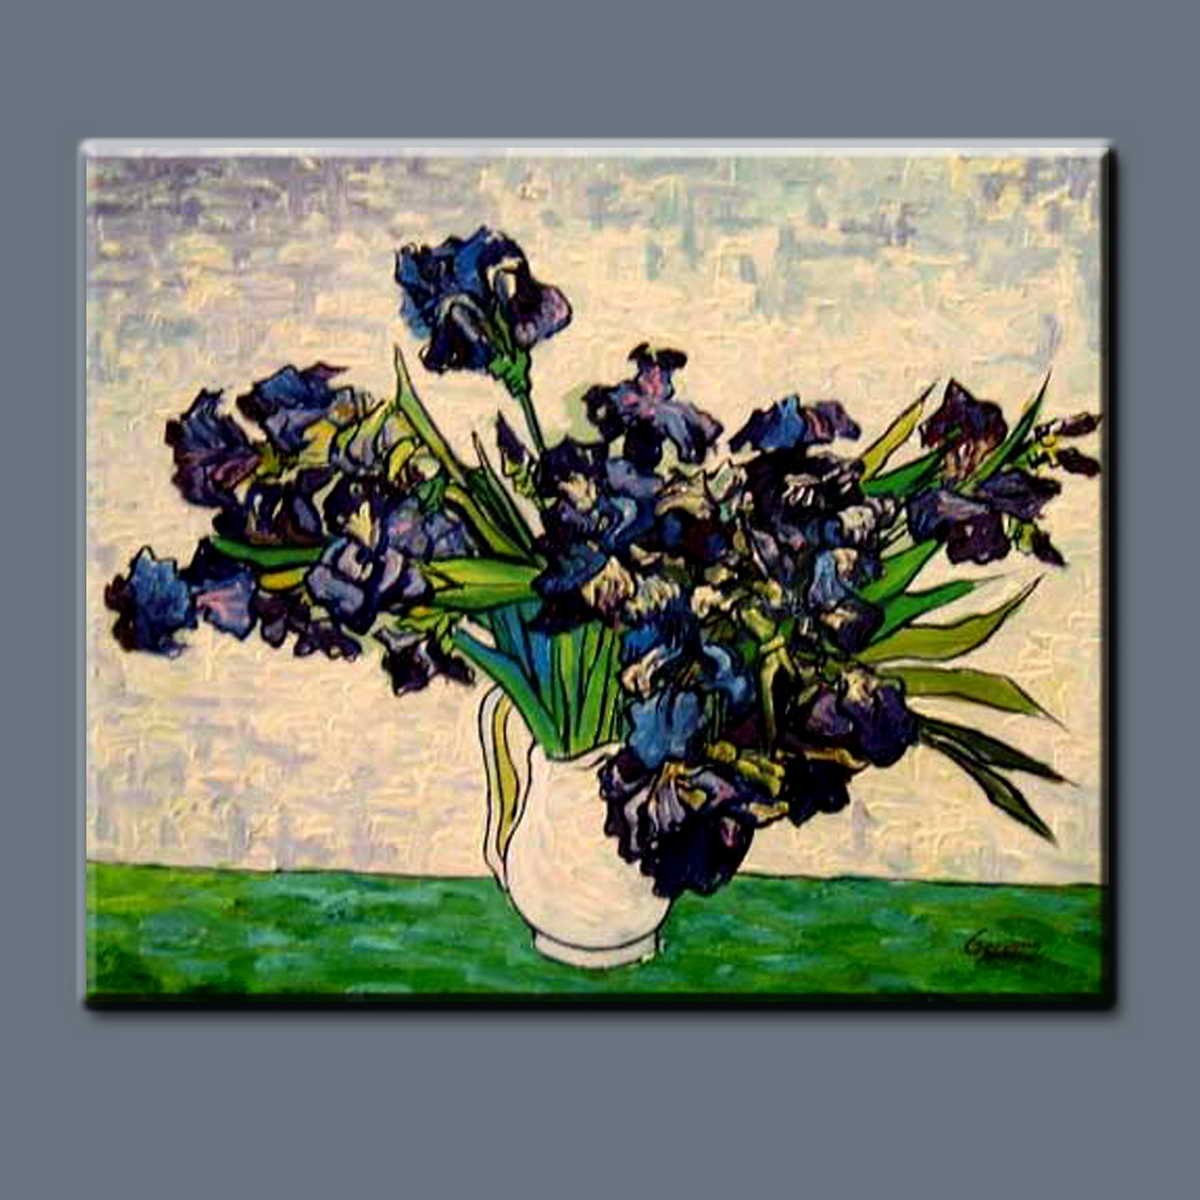 BC13-9267 Handmade Claude Van Gogh oil painting reproduction oil painting beautiful vase of flowers